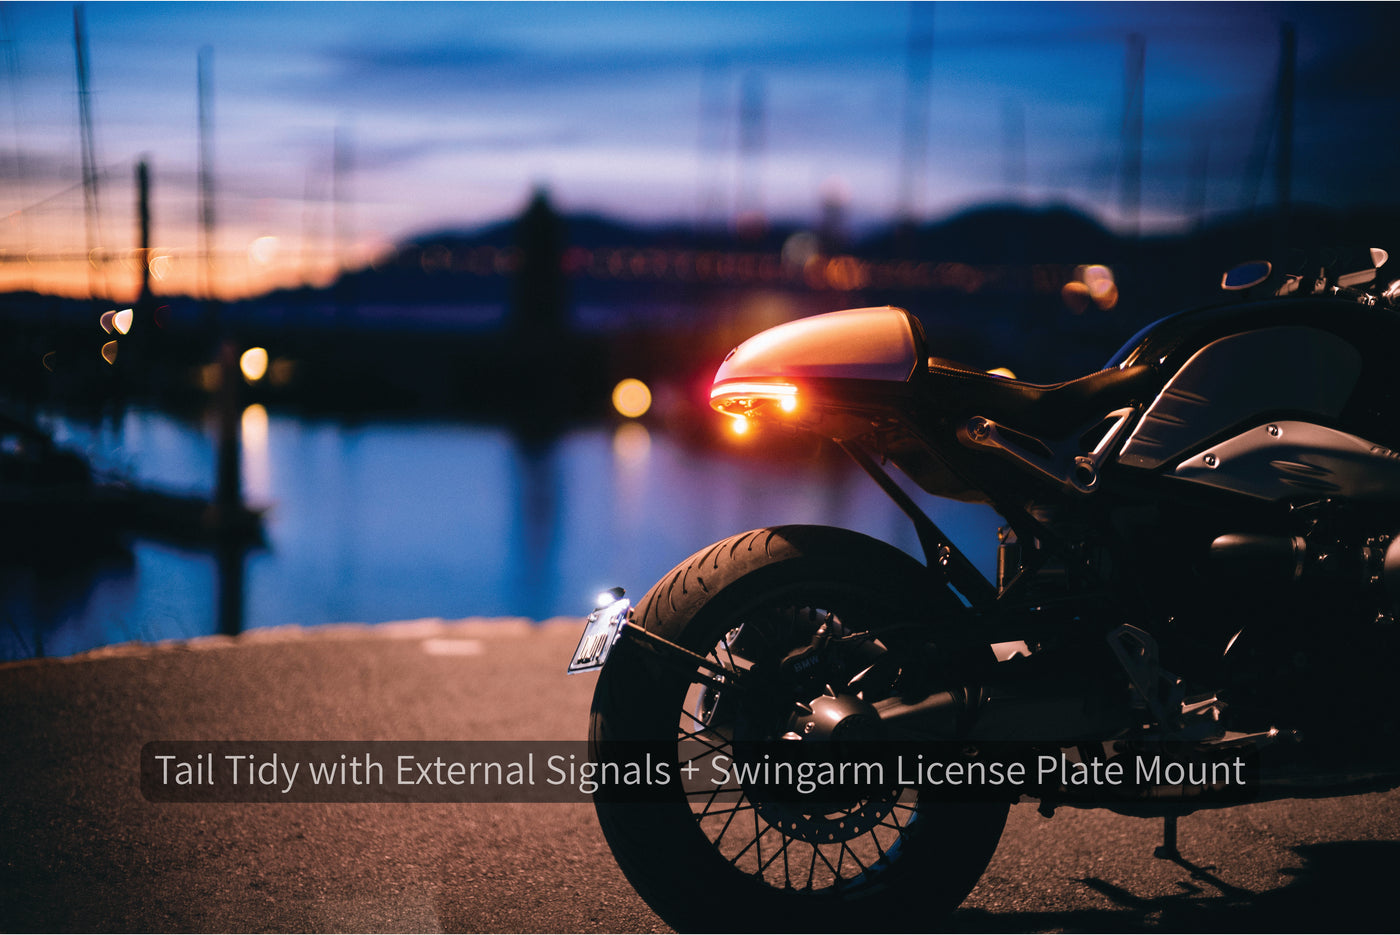 Daedalus Tail Tidy with Club S External Signals by Rizoma and Swingarm License Plate Mount - BMW R nineT